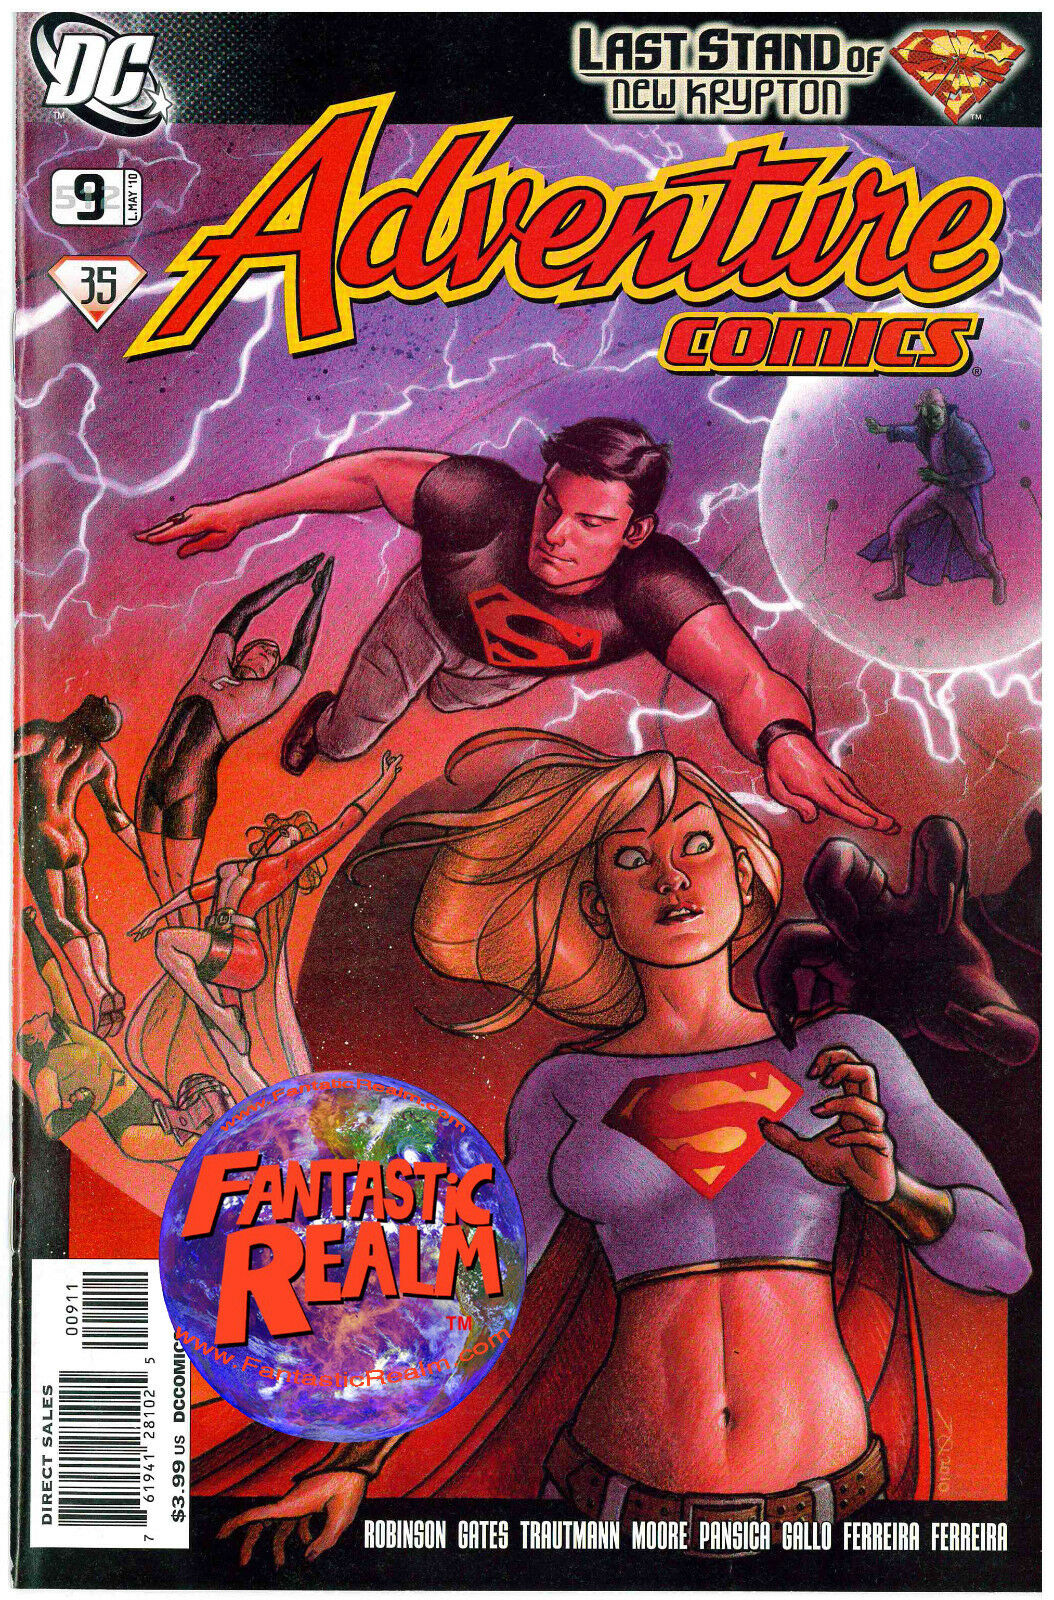 ADVENTURE COMICS #512 (LAST STAND OF NEW KRYPTON) DC COMICS